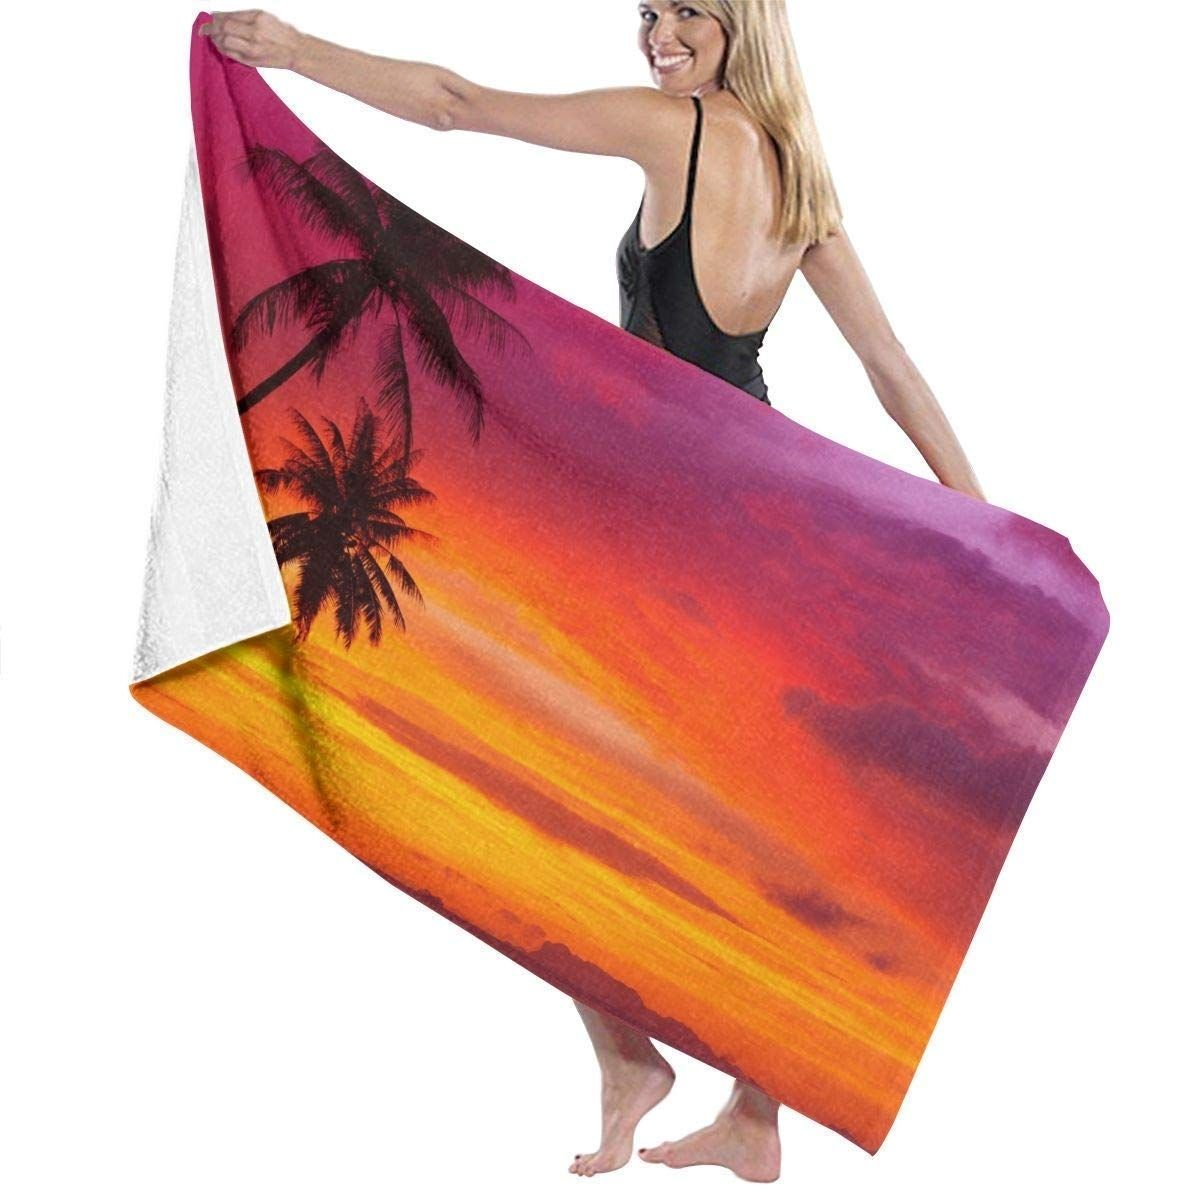 Pink Orange Palm Tree Sunset 3 Piece Bathroom Rugs Set Bath Rug Contour In 2020 With Images Bathroom Rug Sets Palm Tree Sunset Bathroom Rugs